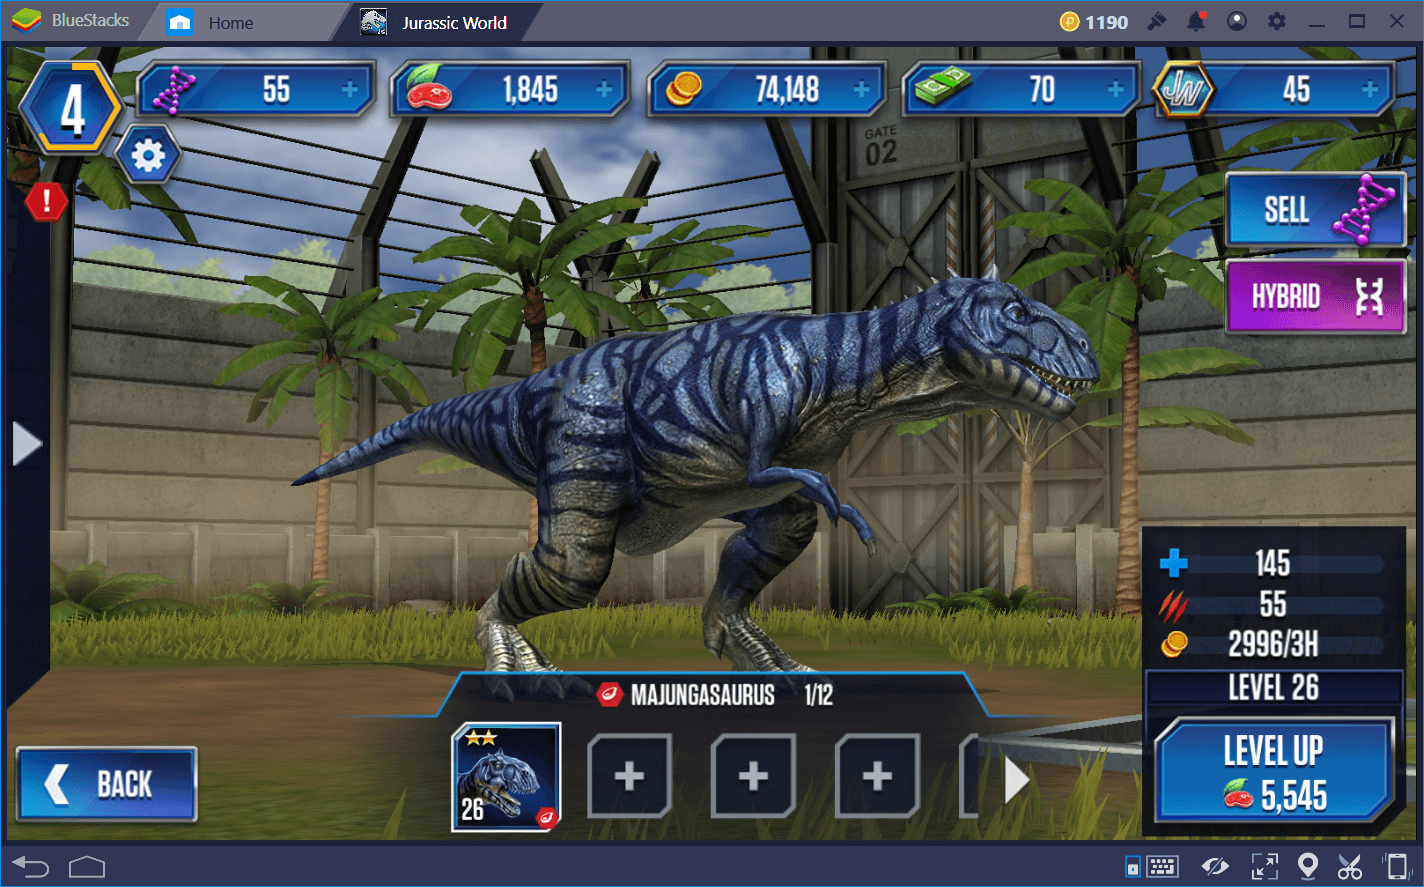 Скачать Jurassic World the Game на компьютер